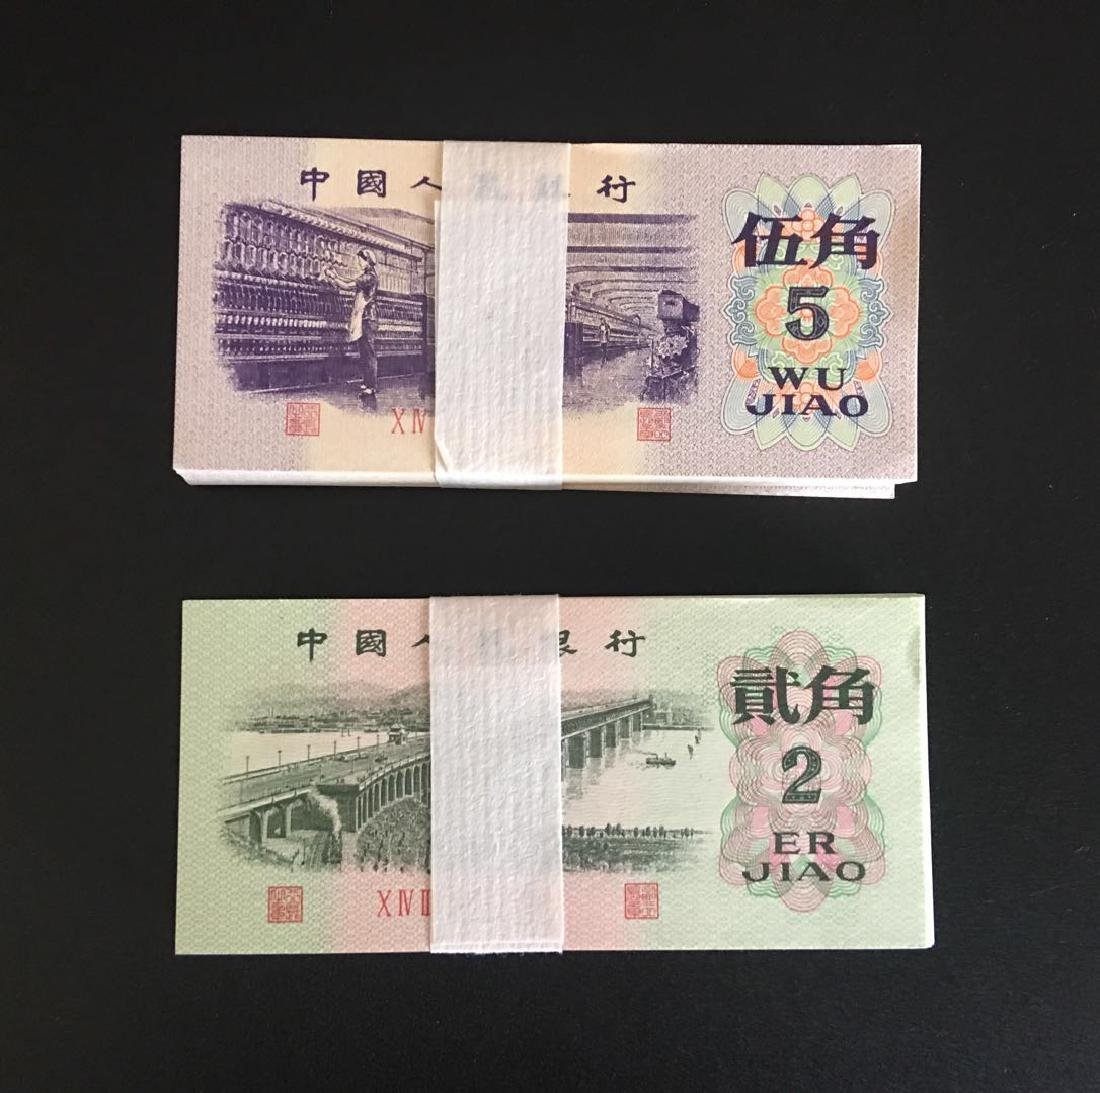 100 Paper bill with Banknote